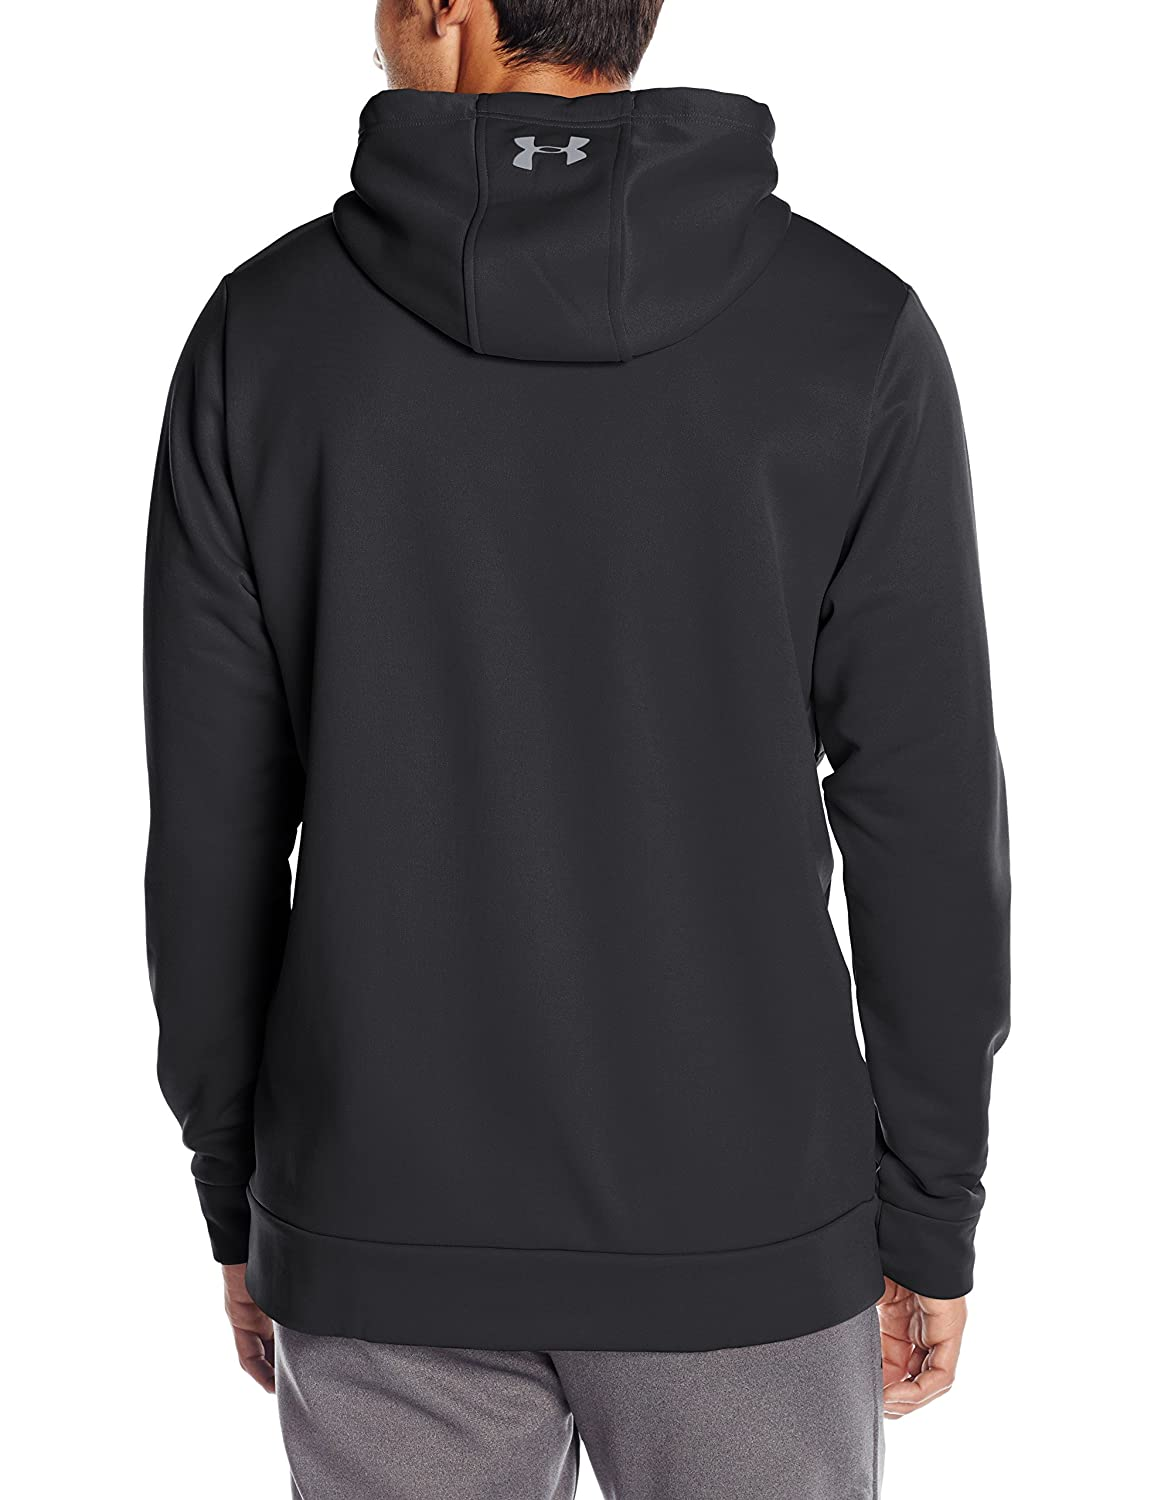 c1bb12412866 Amazon.com  Under Armour Men s Storm Armour Fleece Hoodie  UNDER ARMOUR   Sports   Outdoors